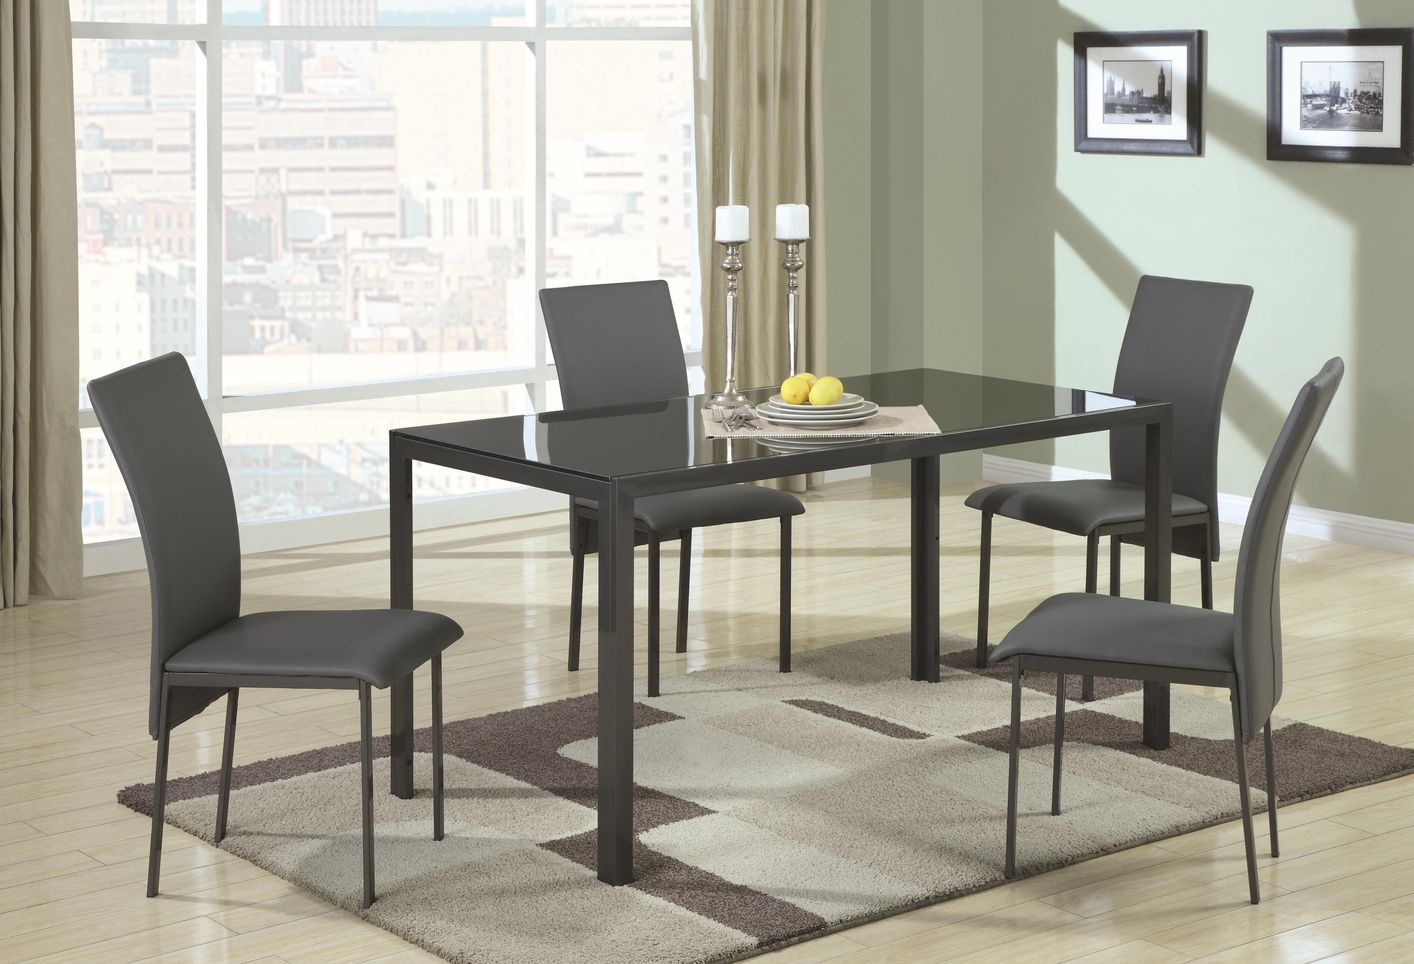 Glass Dining Room Table Set shelby black metal and glass dining table set - steal-a-sofa